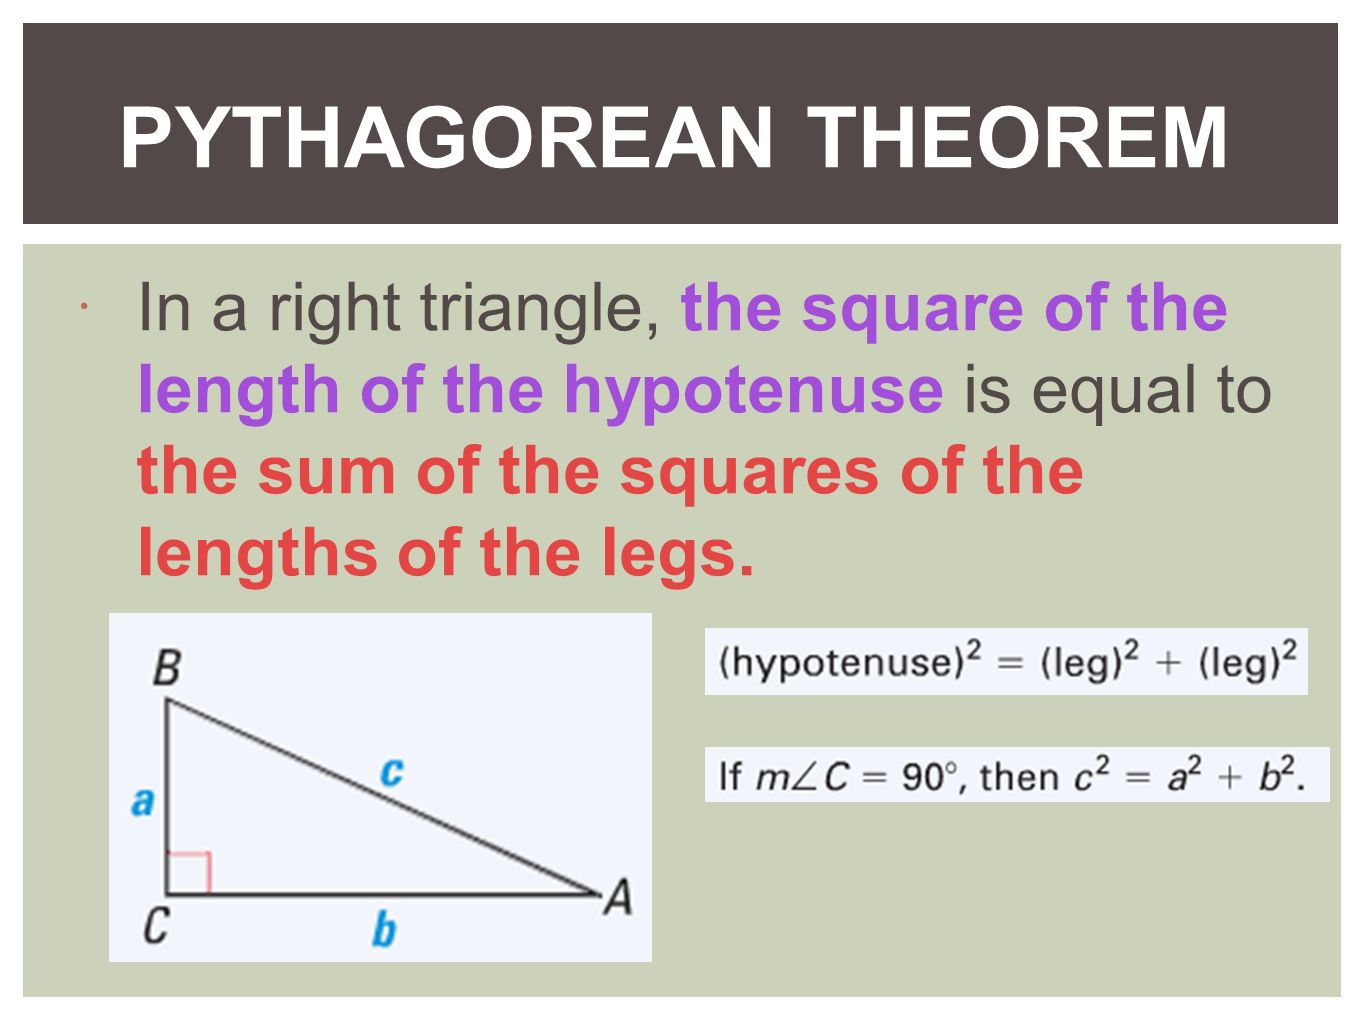 PYTHAGOREAN THEOREM In a right triangle, the square of the length of the hypotenuse is equal to the sum of the squares of the lengths of the legs.